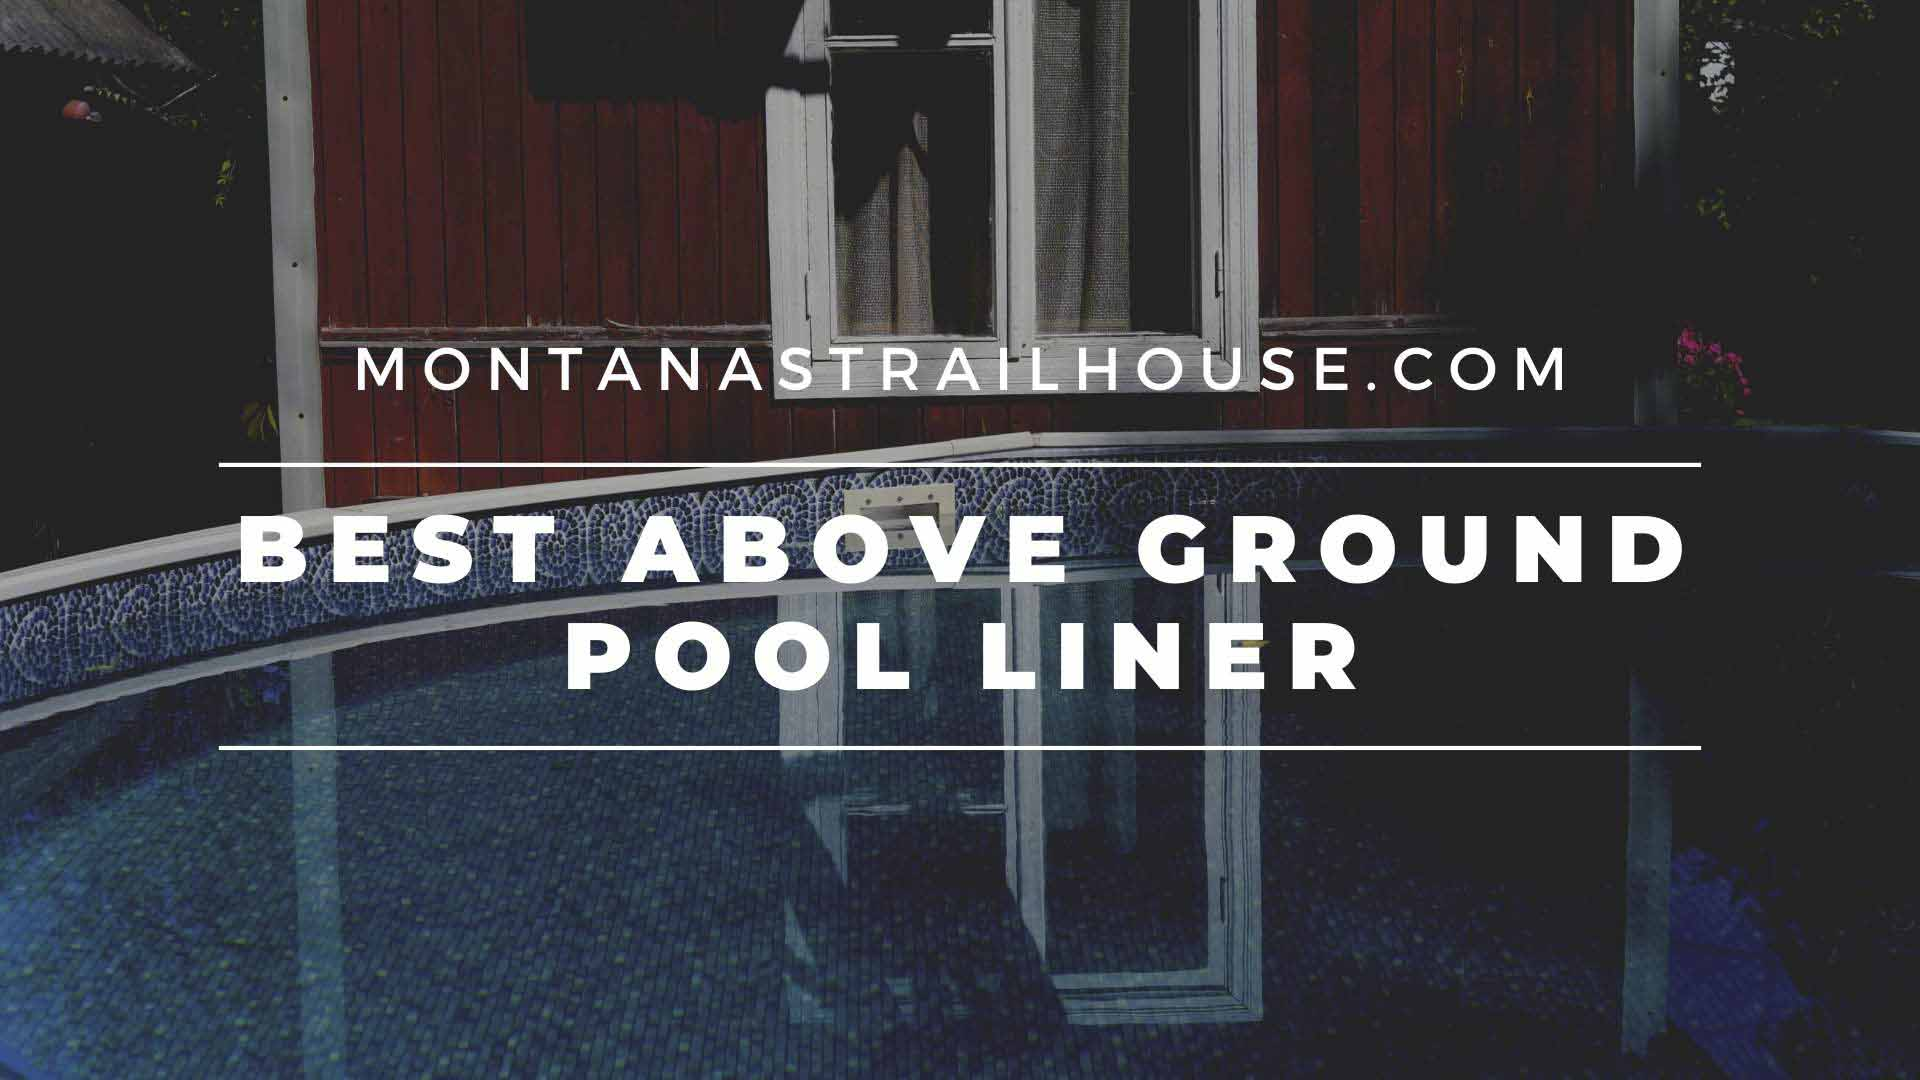 13 Best Above Ground Pool Liners Reviews of 2021